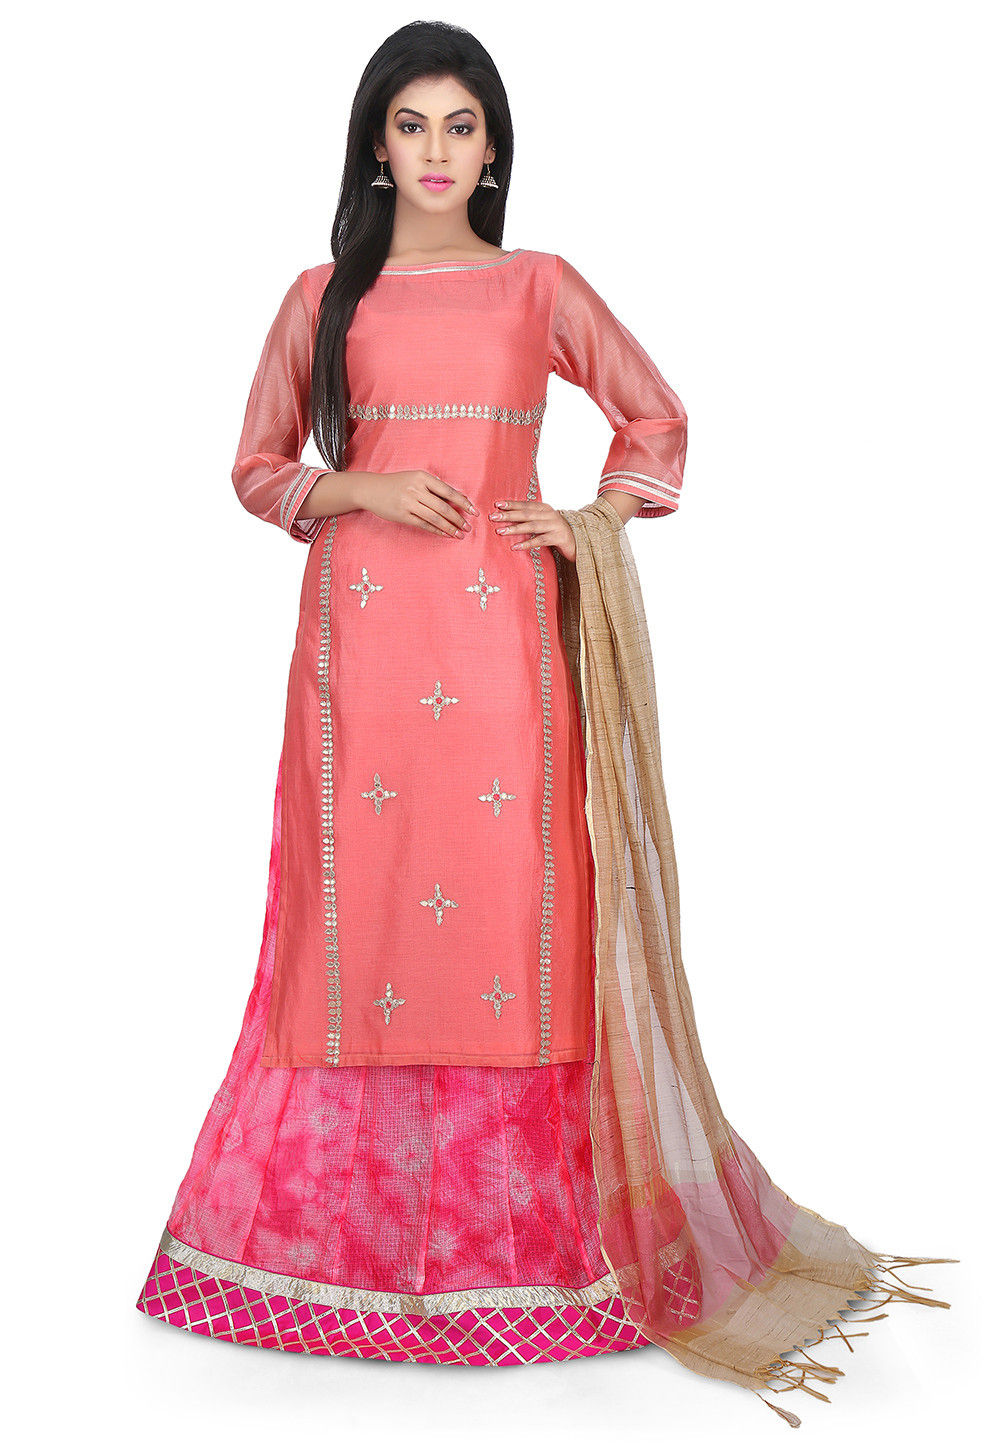 Embroidered Art Chanderi Silk Circular Lehenga in Peach and Pink